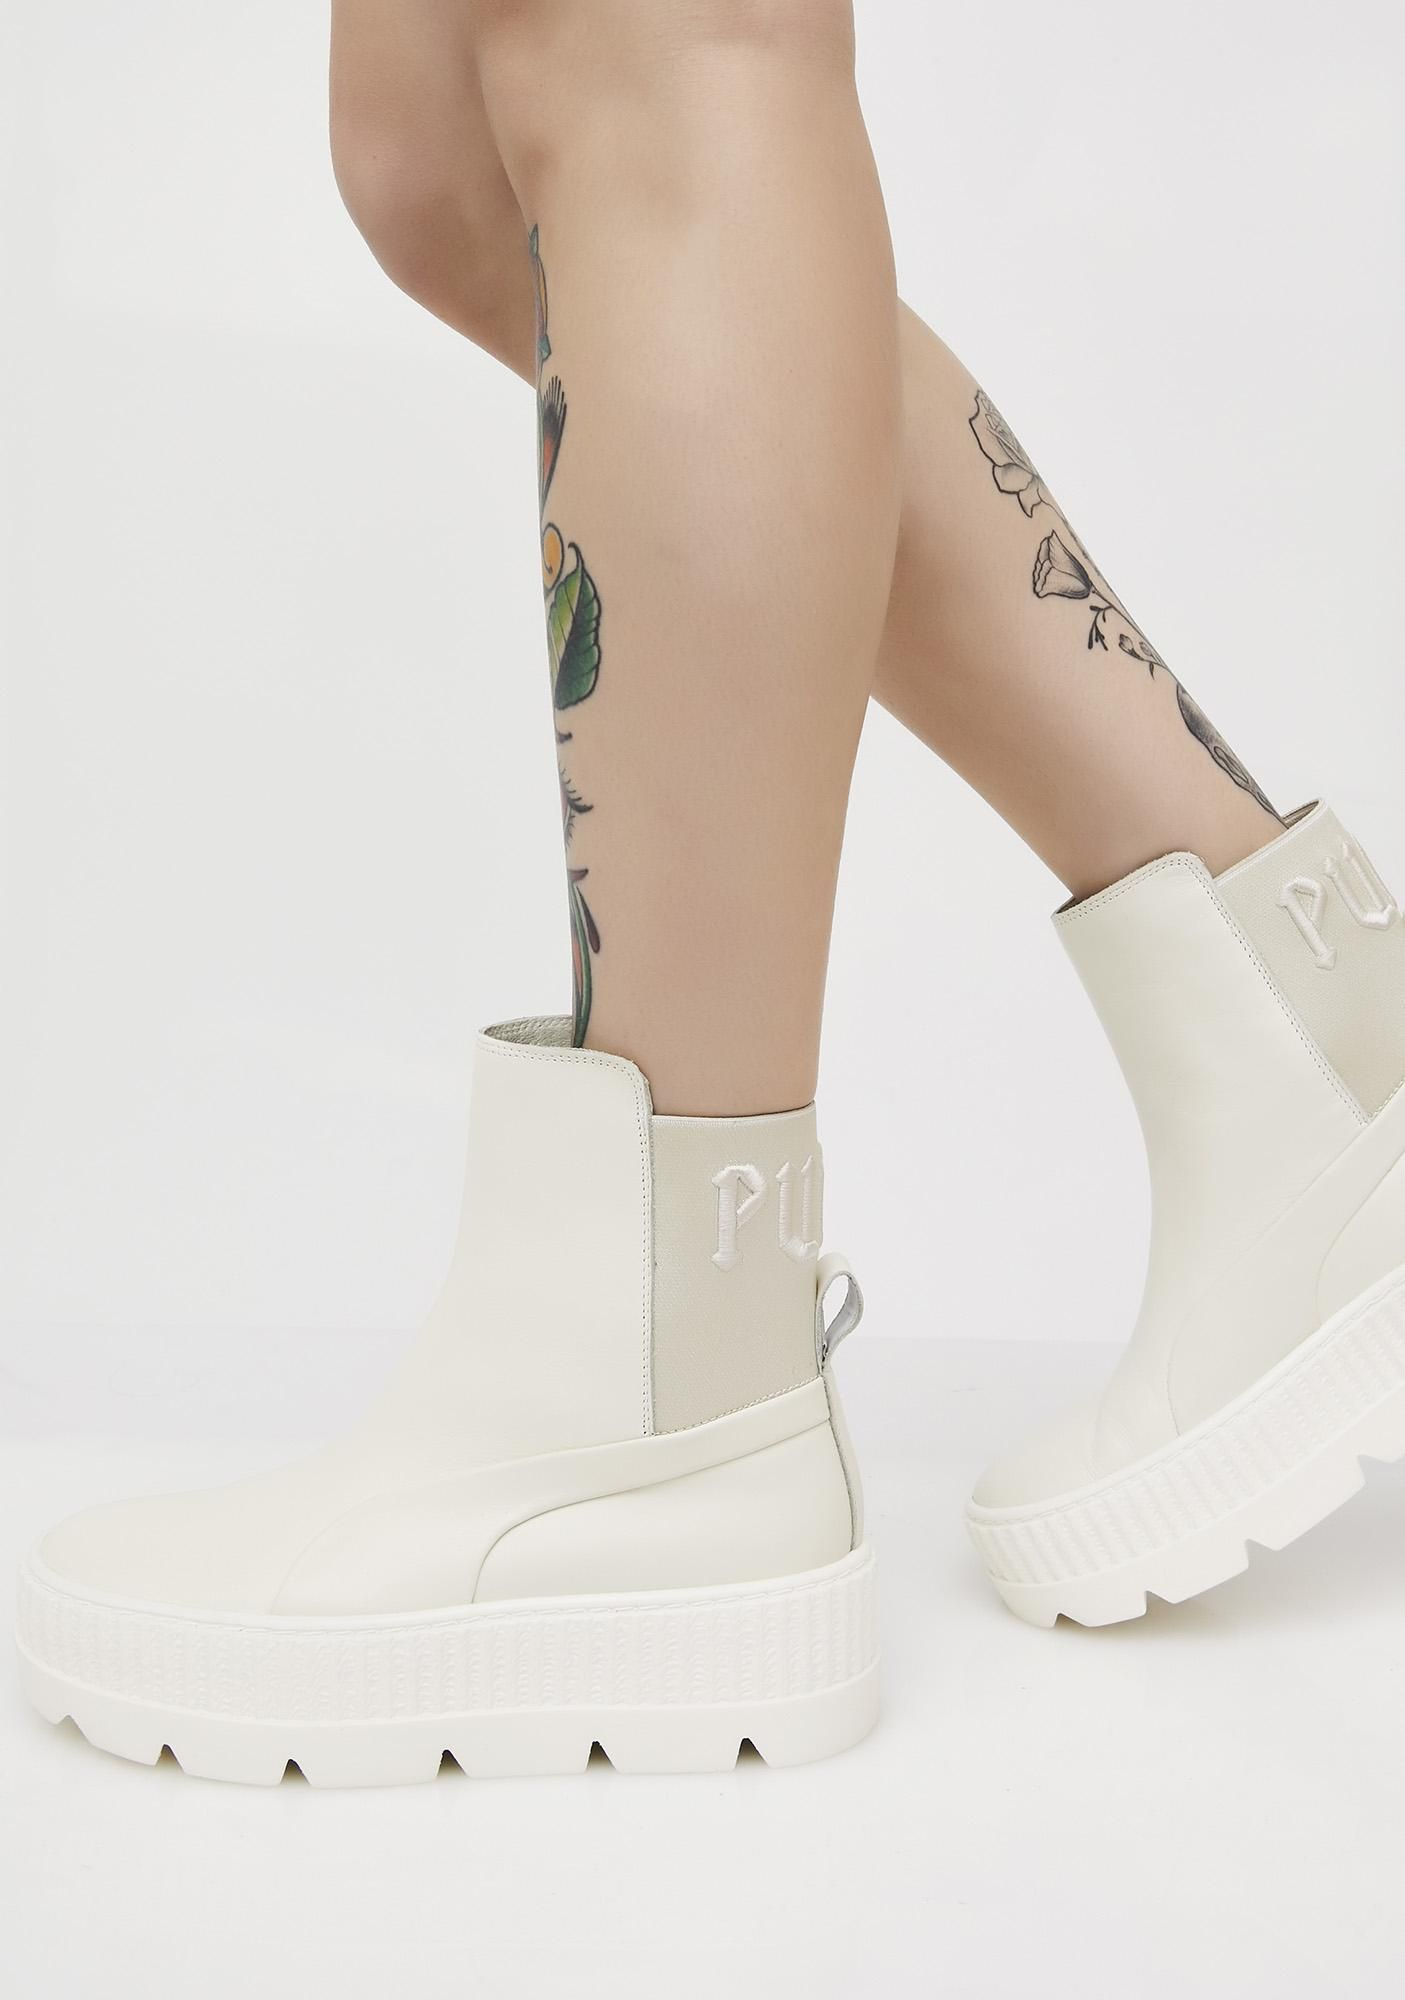 "a3b57bc4021f60 PUMA Vanilla FENTY PUMA By Rihanna Chelsea Sneaker Boots got ya on another  level. These white sneaker boots have thikk soles and ""PUMA"" text on the  back."